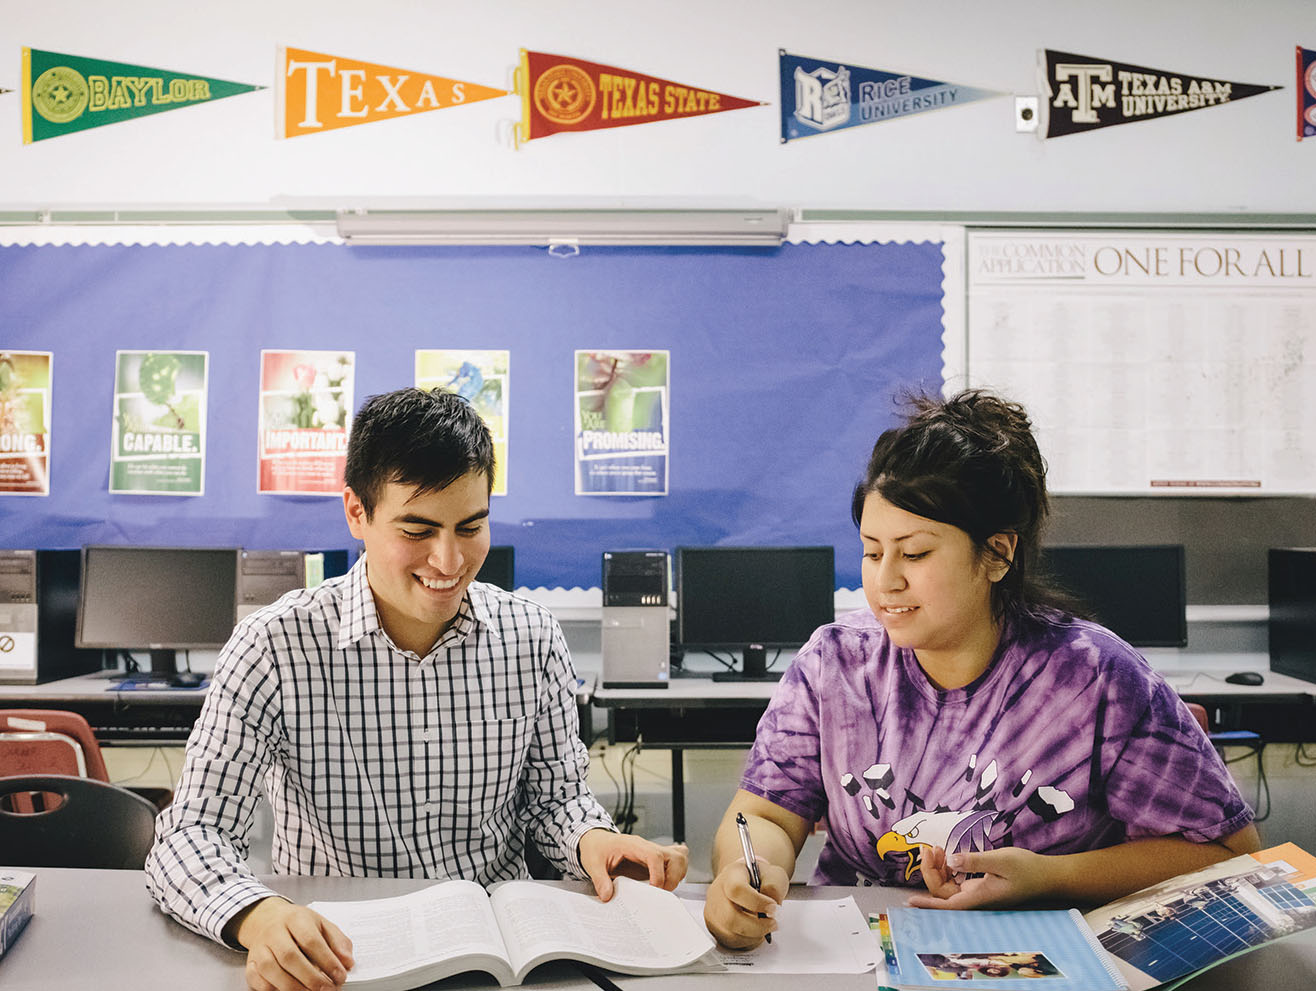 Two young people in a classroom looking at college materials